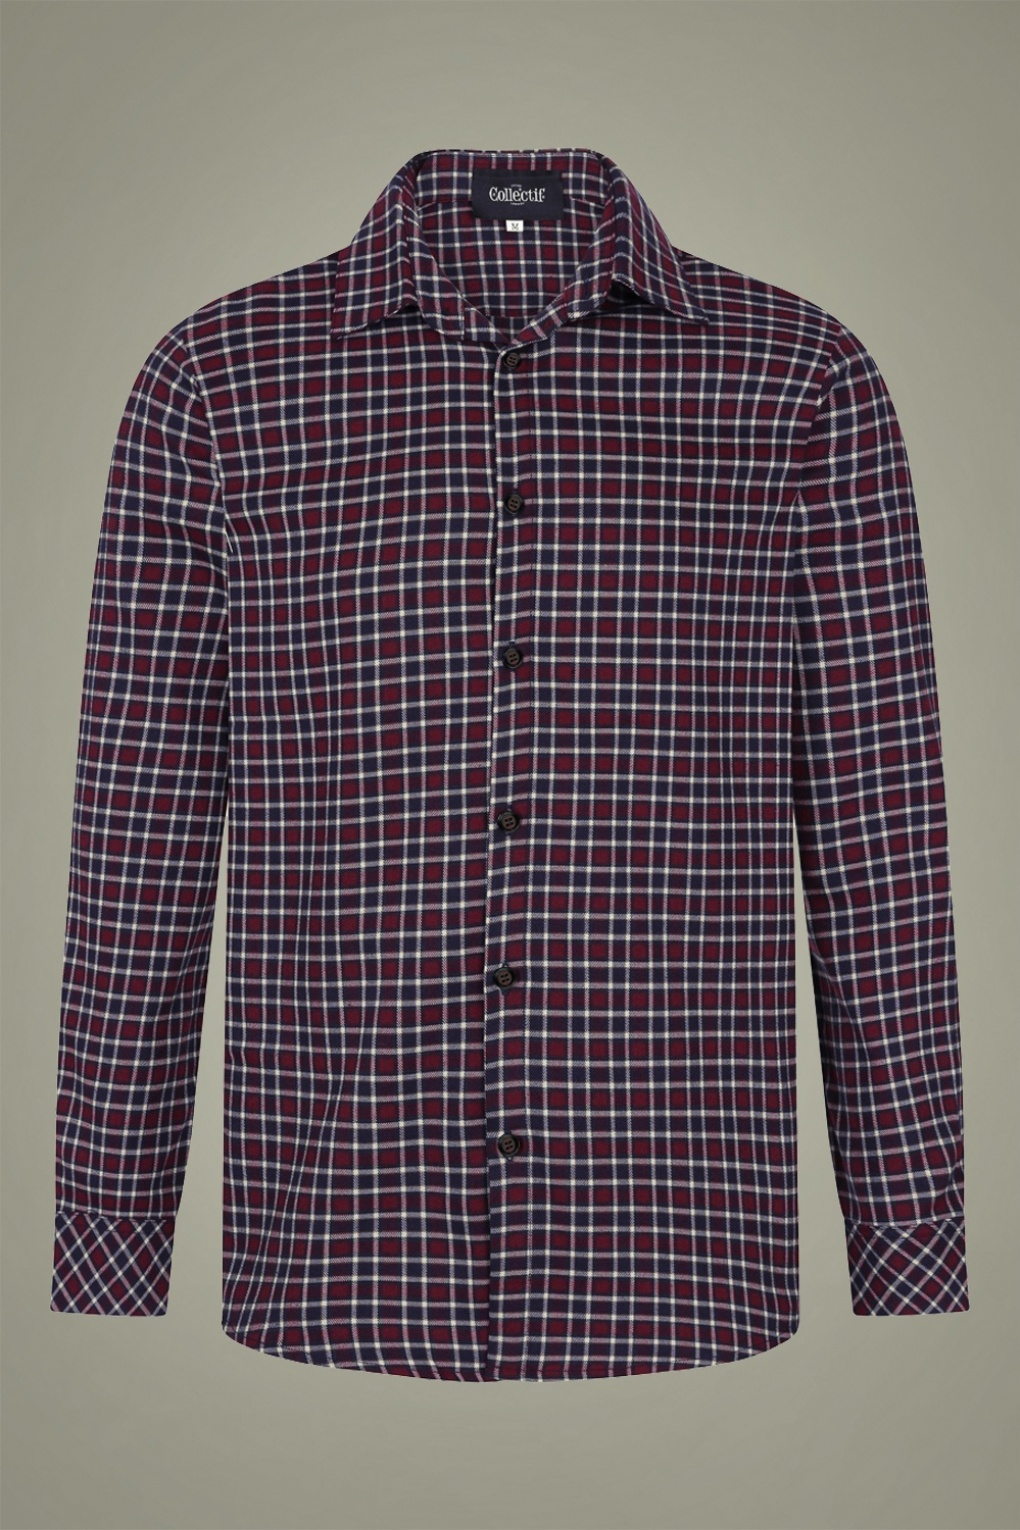 1940s Style Mens Shirts, Sweaters, Vests 40s Hunter Check Blouse in Wine £52.47 AT vintagedancer.com